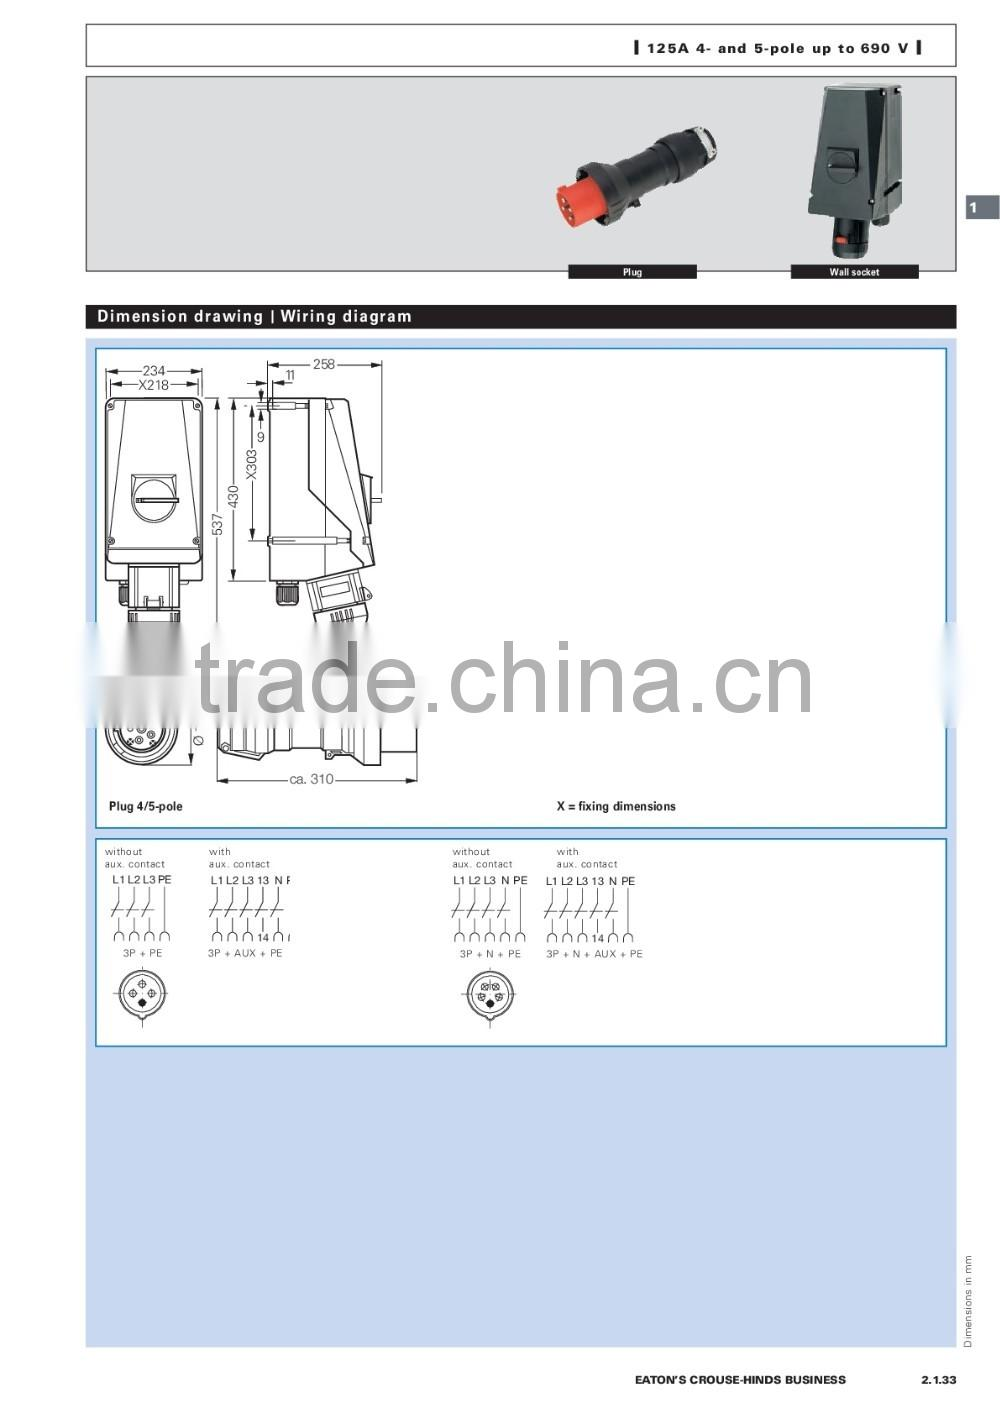 Ceag 125a 5p 380 415v wall socket outlet cw plug of ceag products ceag 125a 5p 380 415v wall socket outlet cw plug asfbconference2016 Choice Image